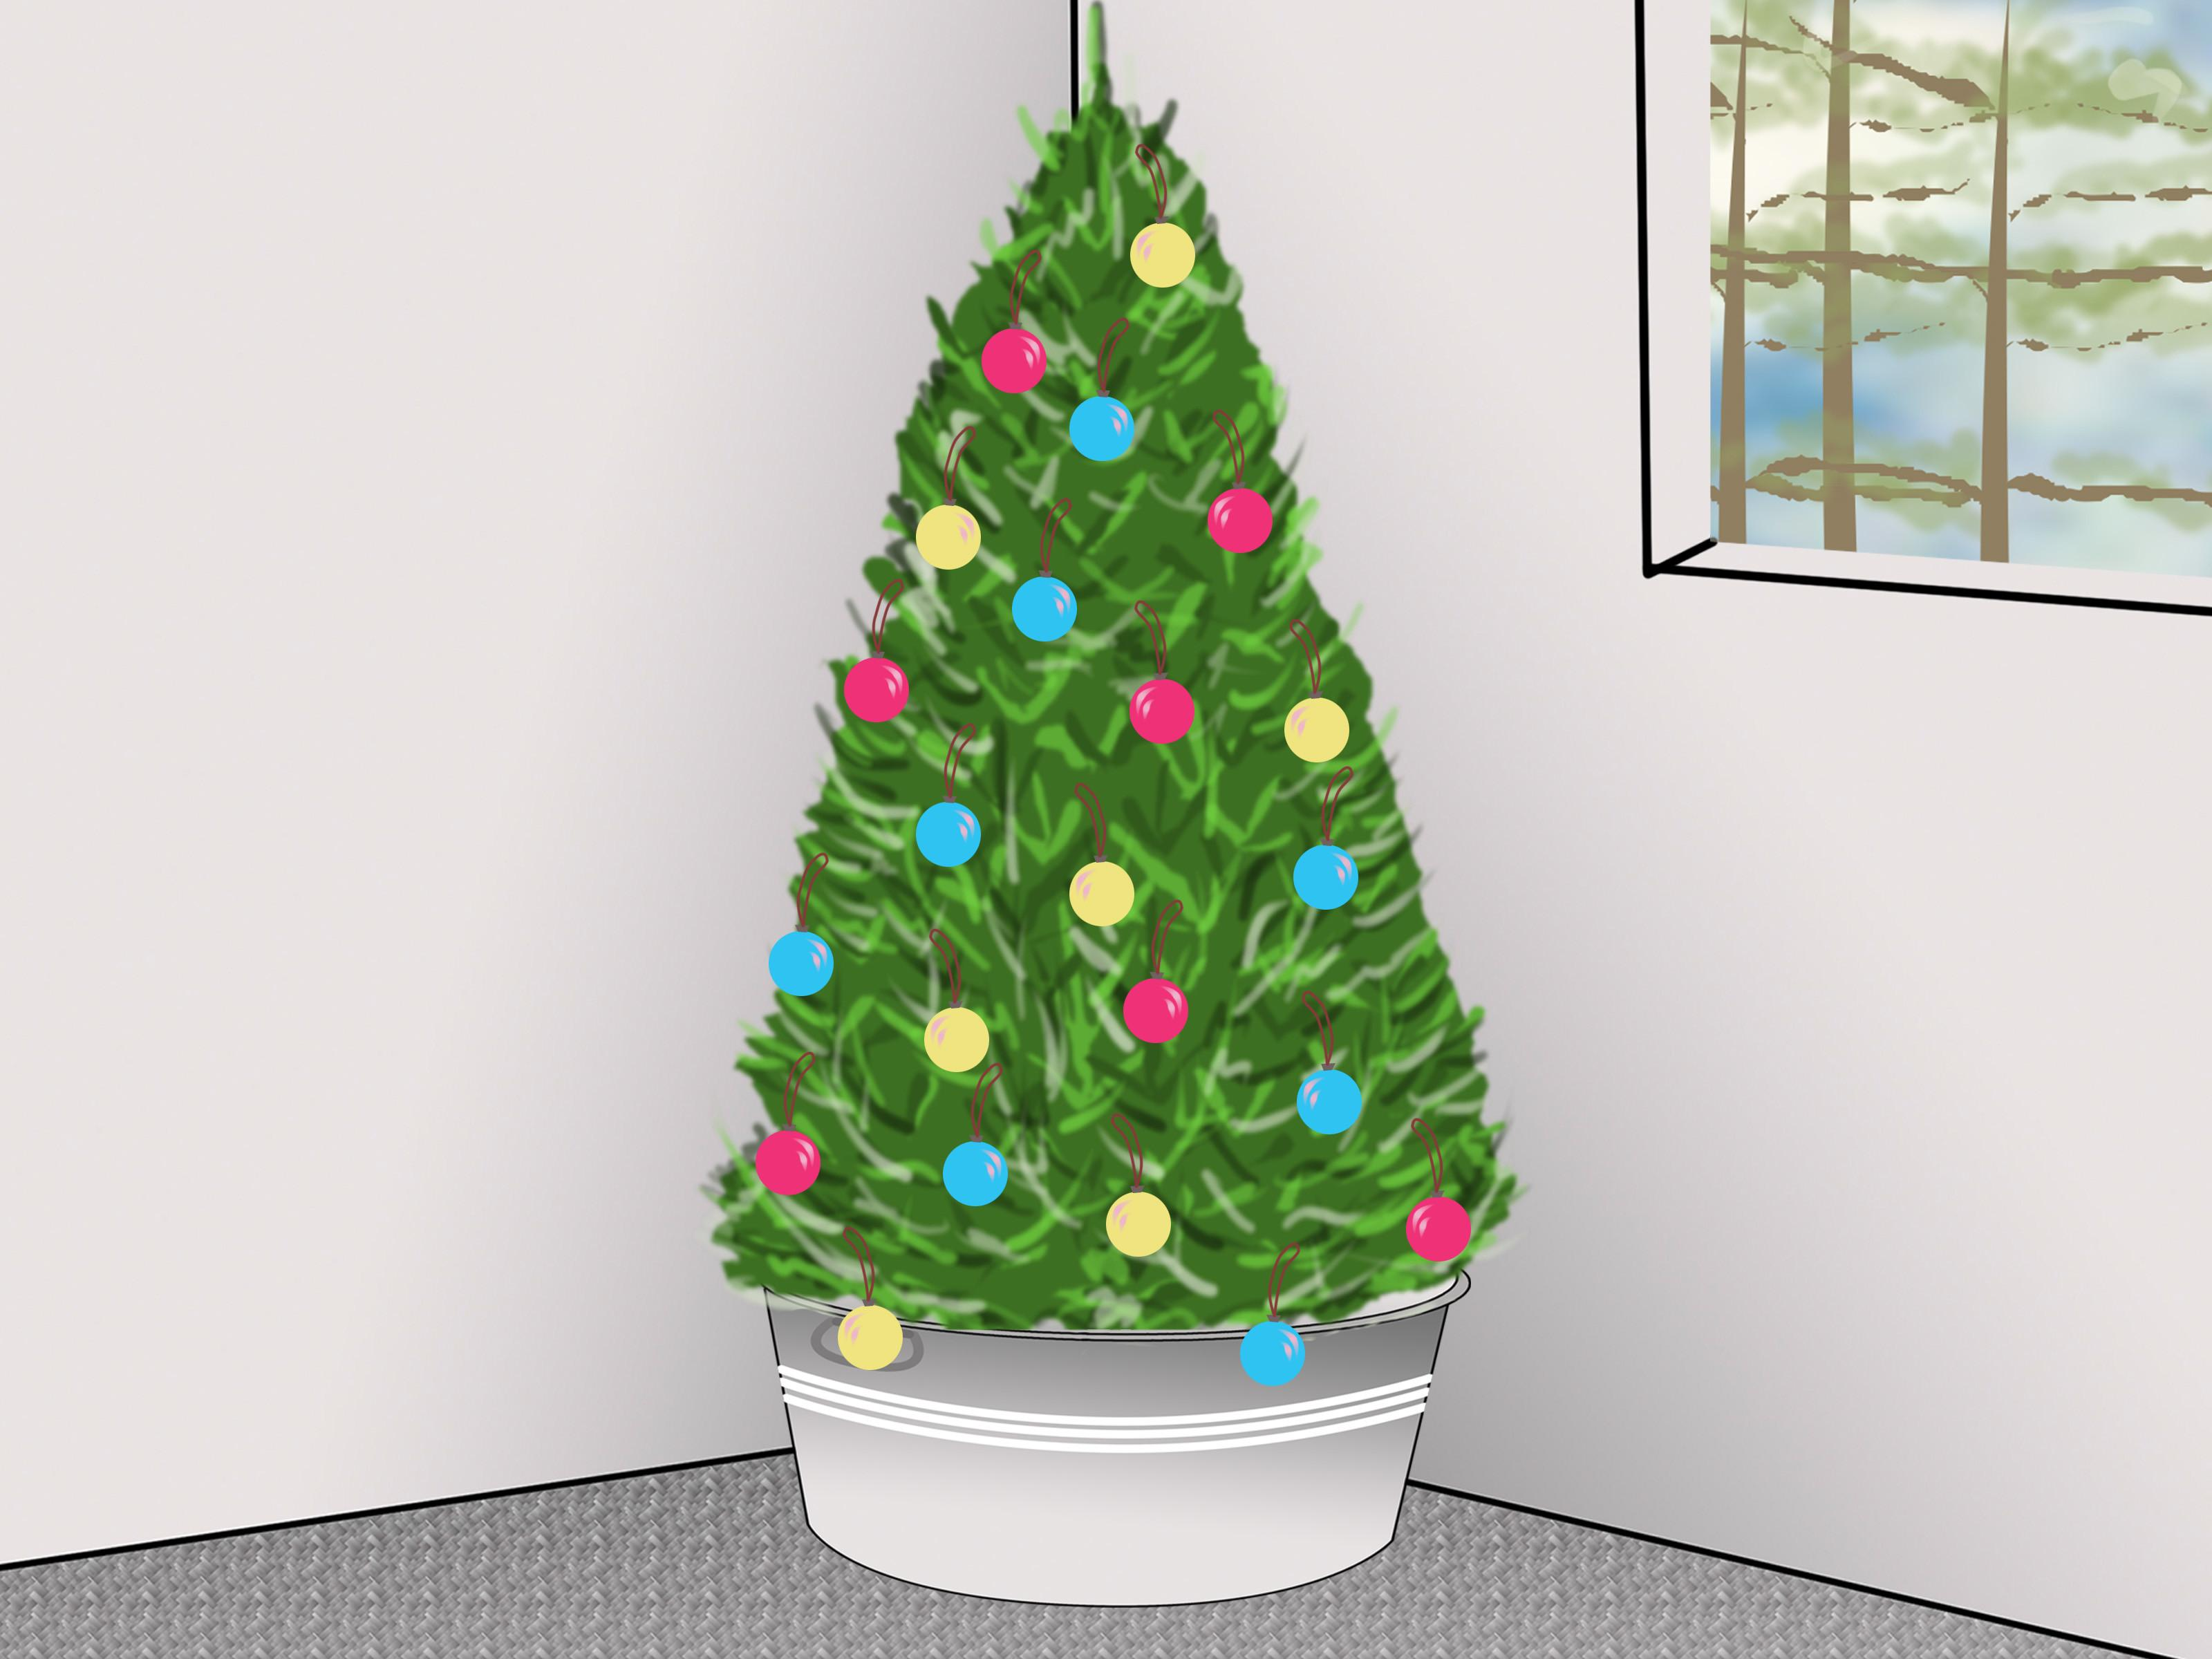 Order Decorate Christmas Tree Lights Card